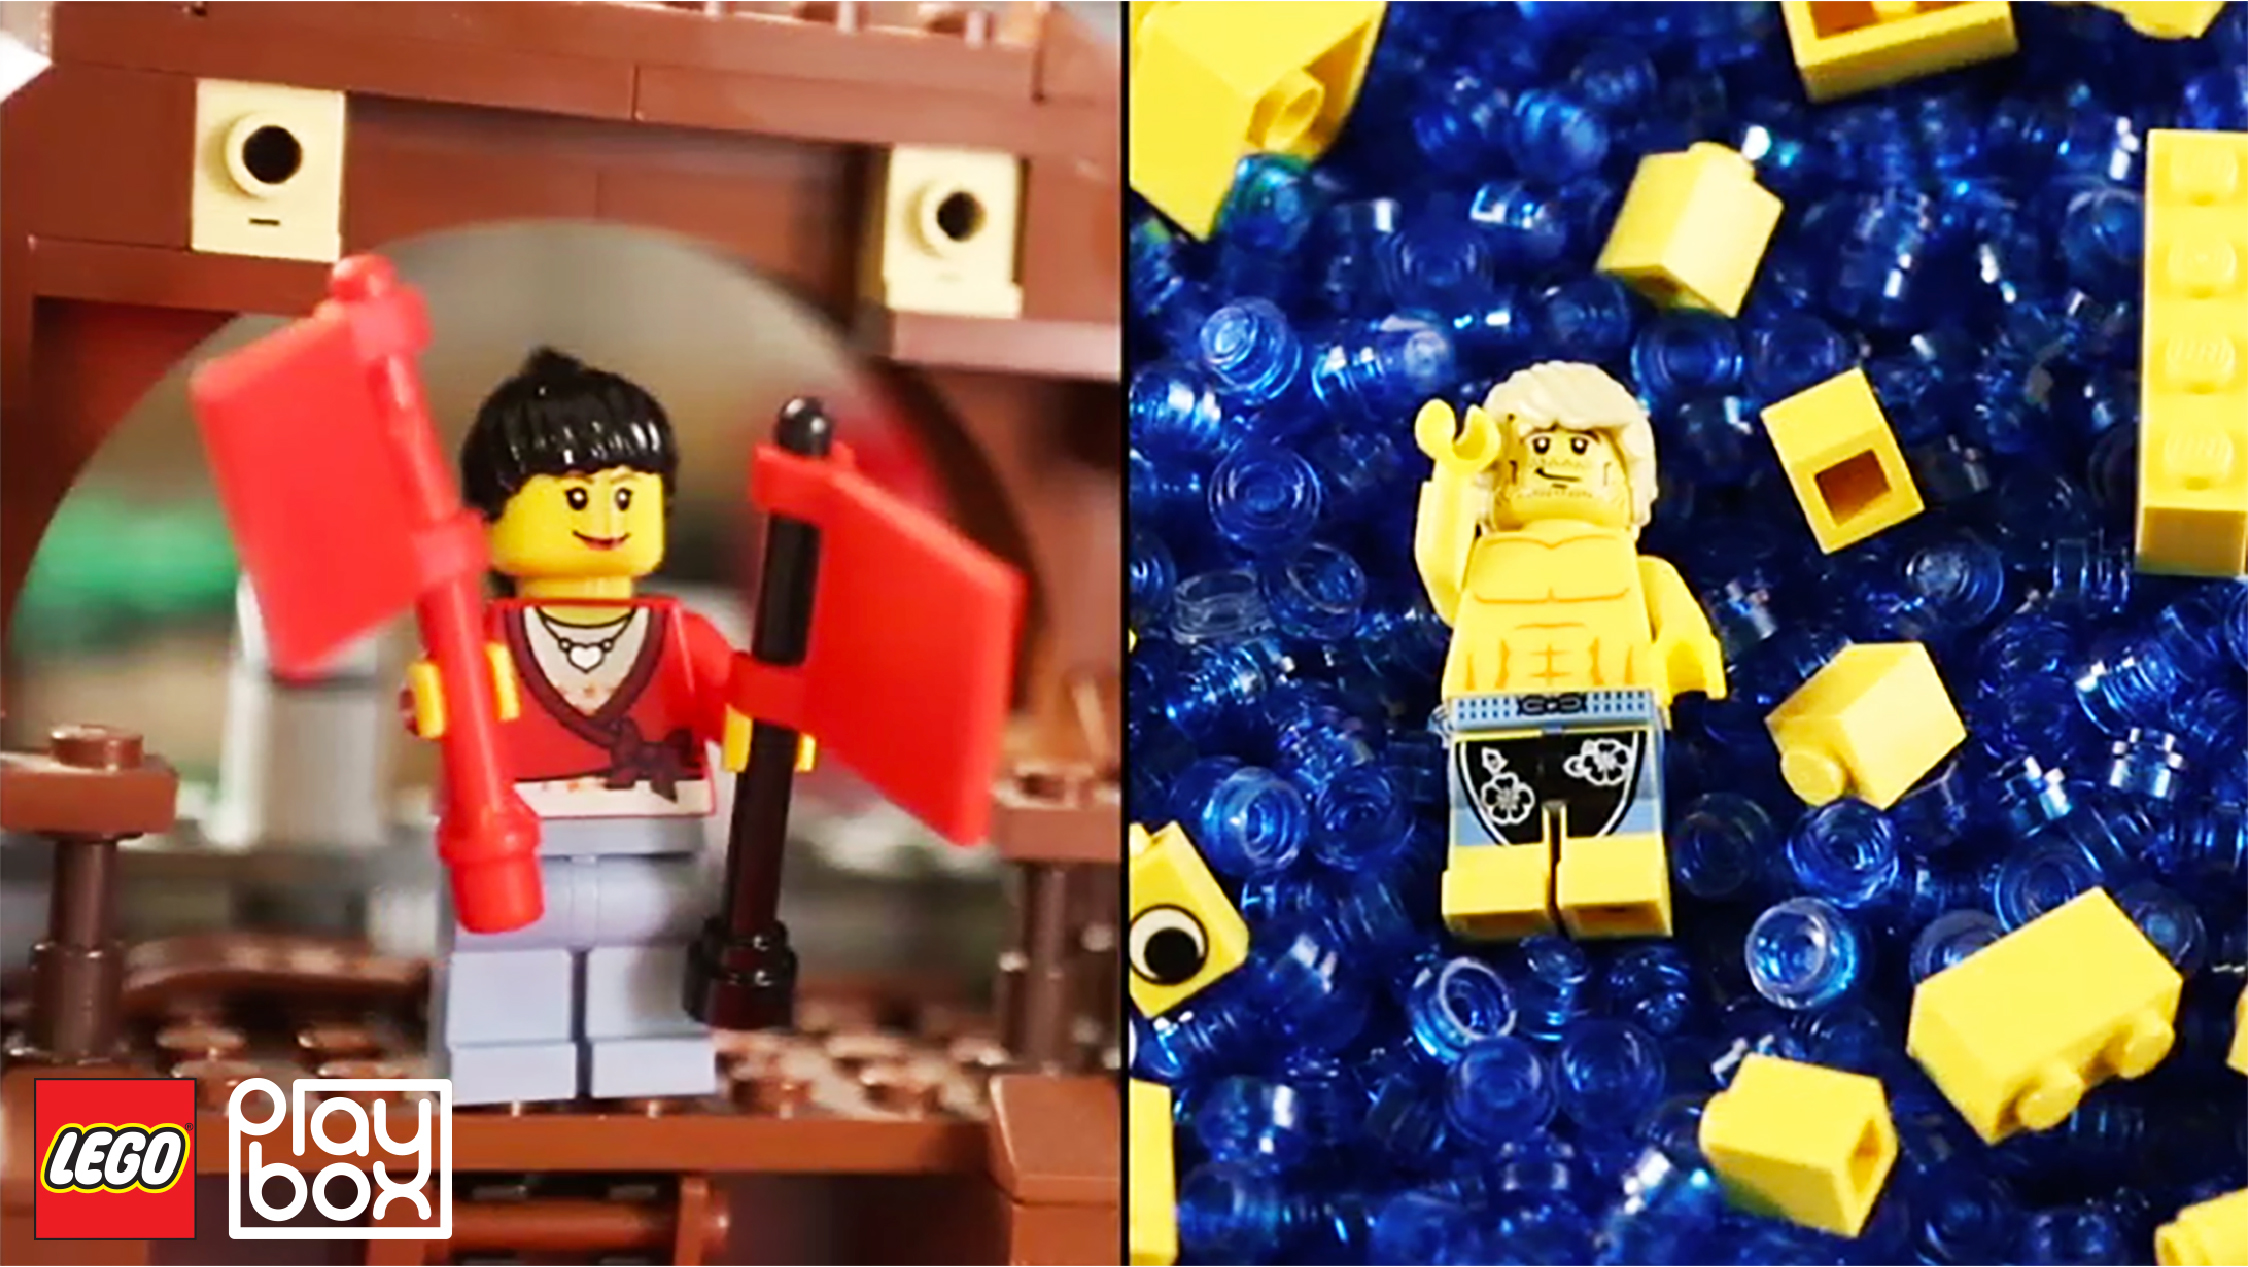 lego company analysis Lego pestel, five forces & strategic groups analyses lego group is a family owned toy manufacturing company with its roots pestle analysis involves six factors:.